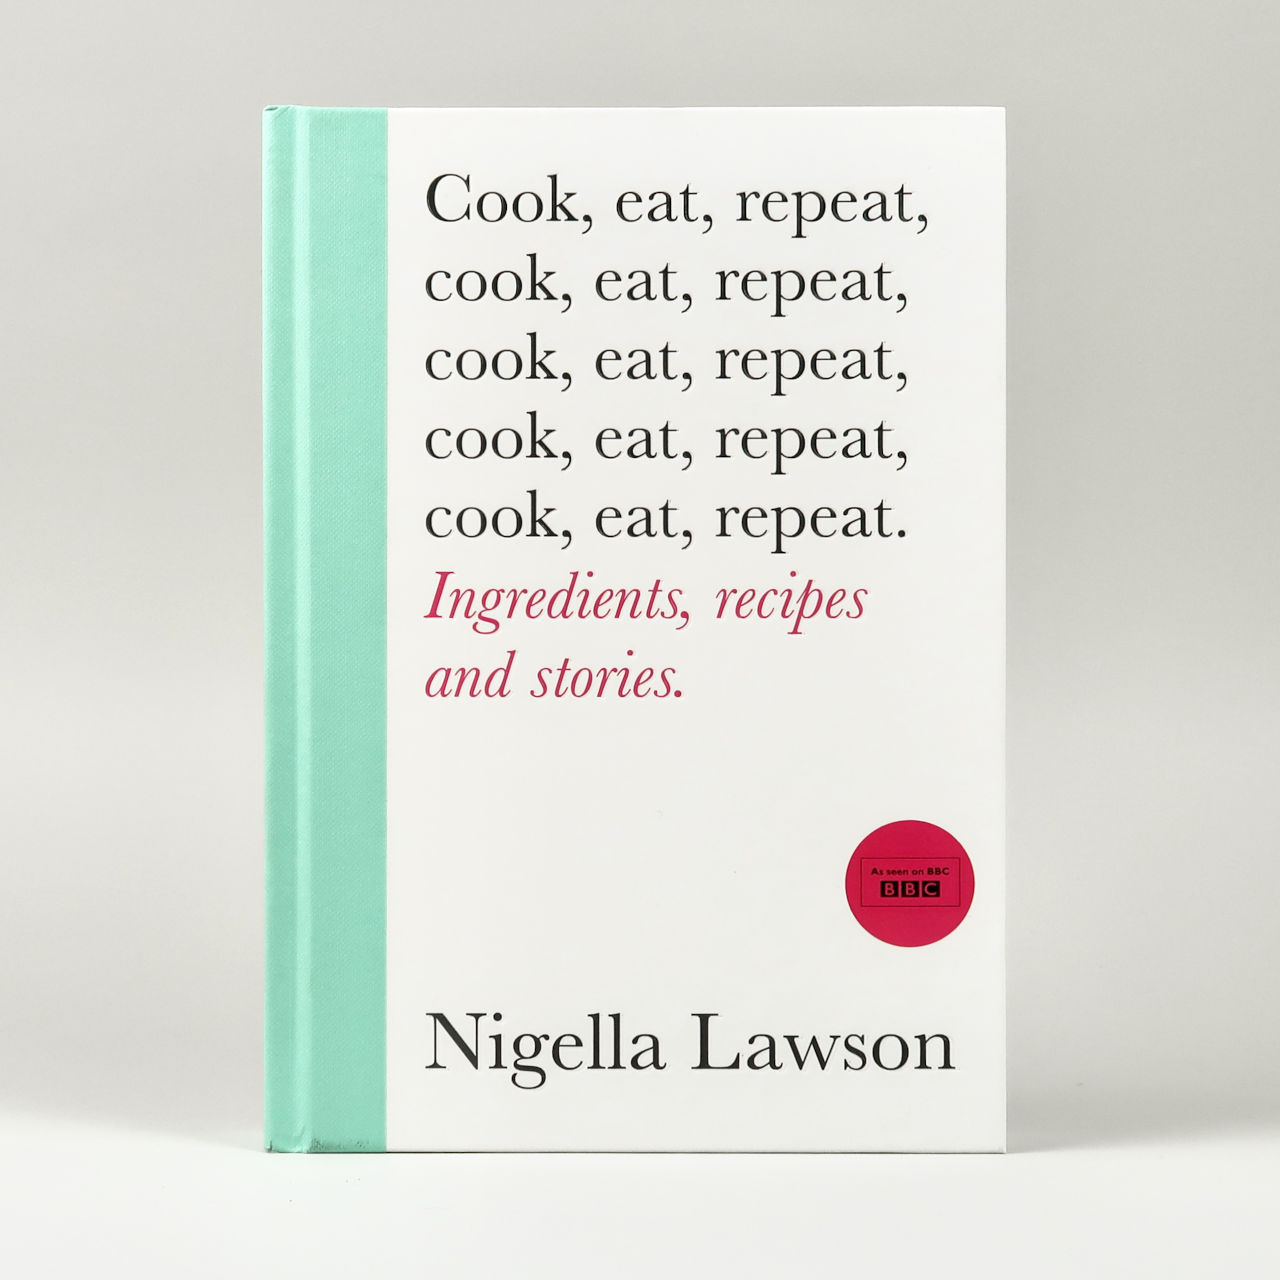 Cook Eat Repeat - Nigella Lawson